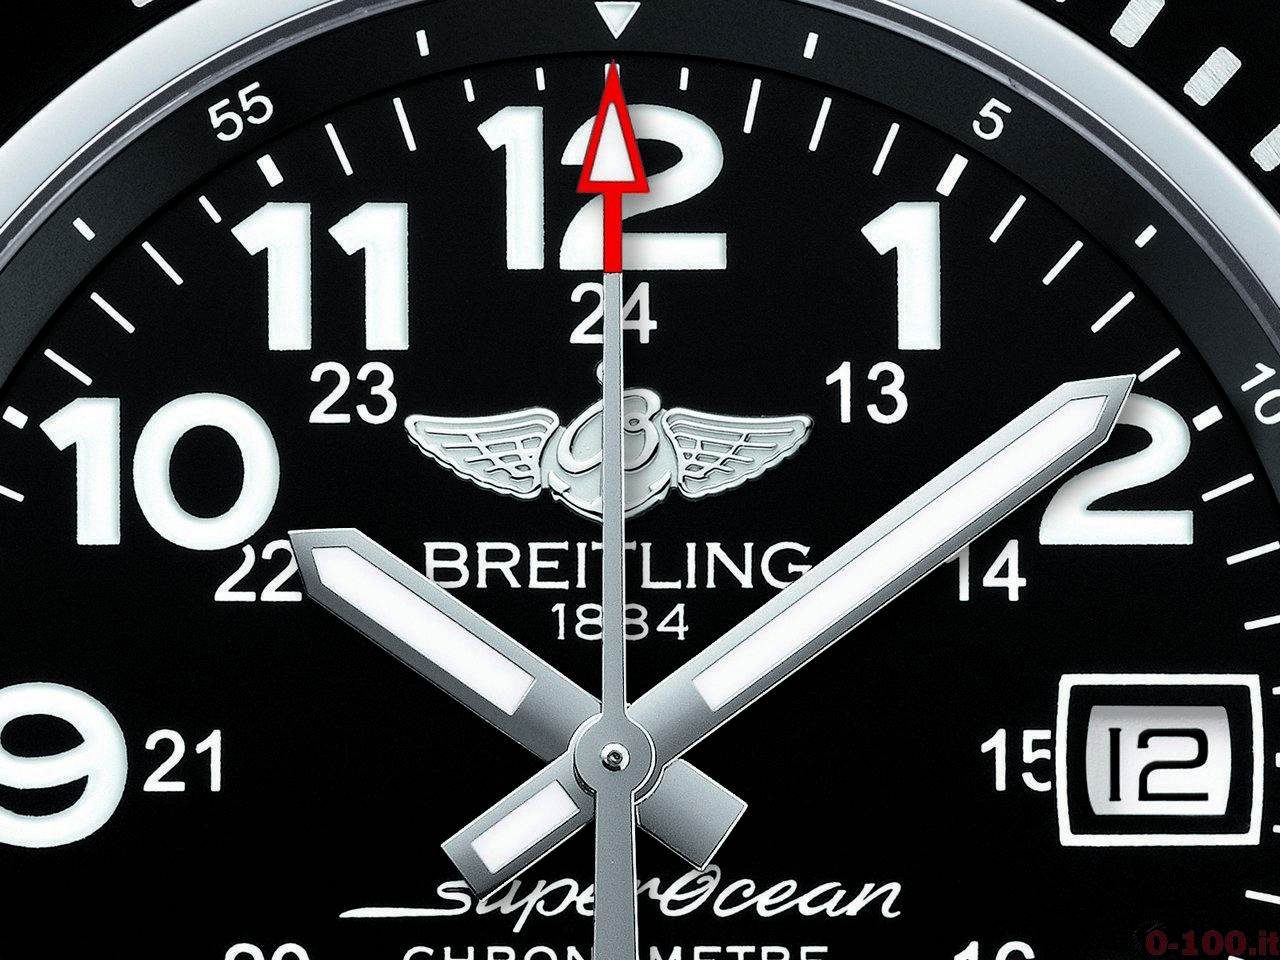 baselworld-2015_bentley-superocean-II-0-100_8